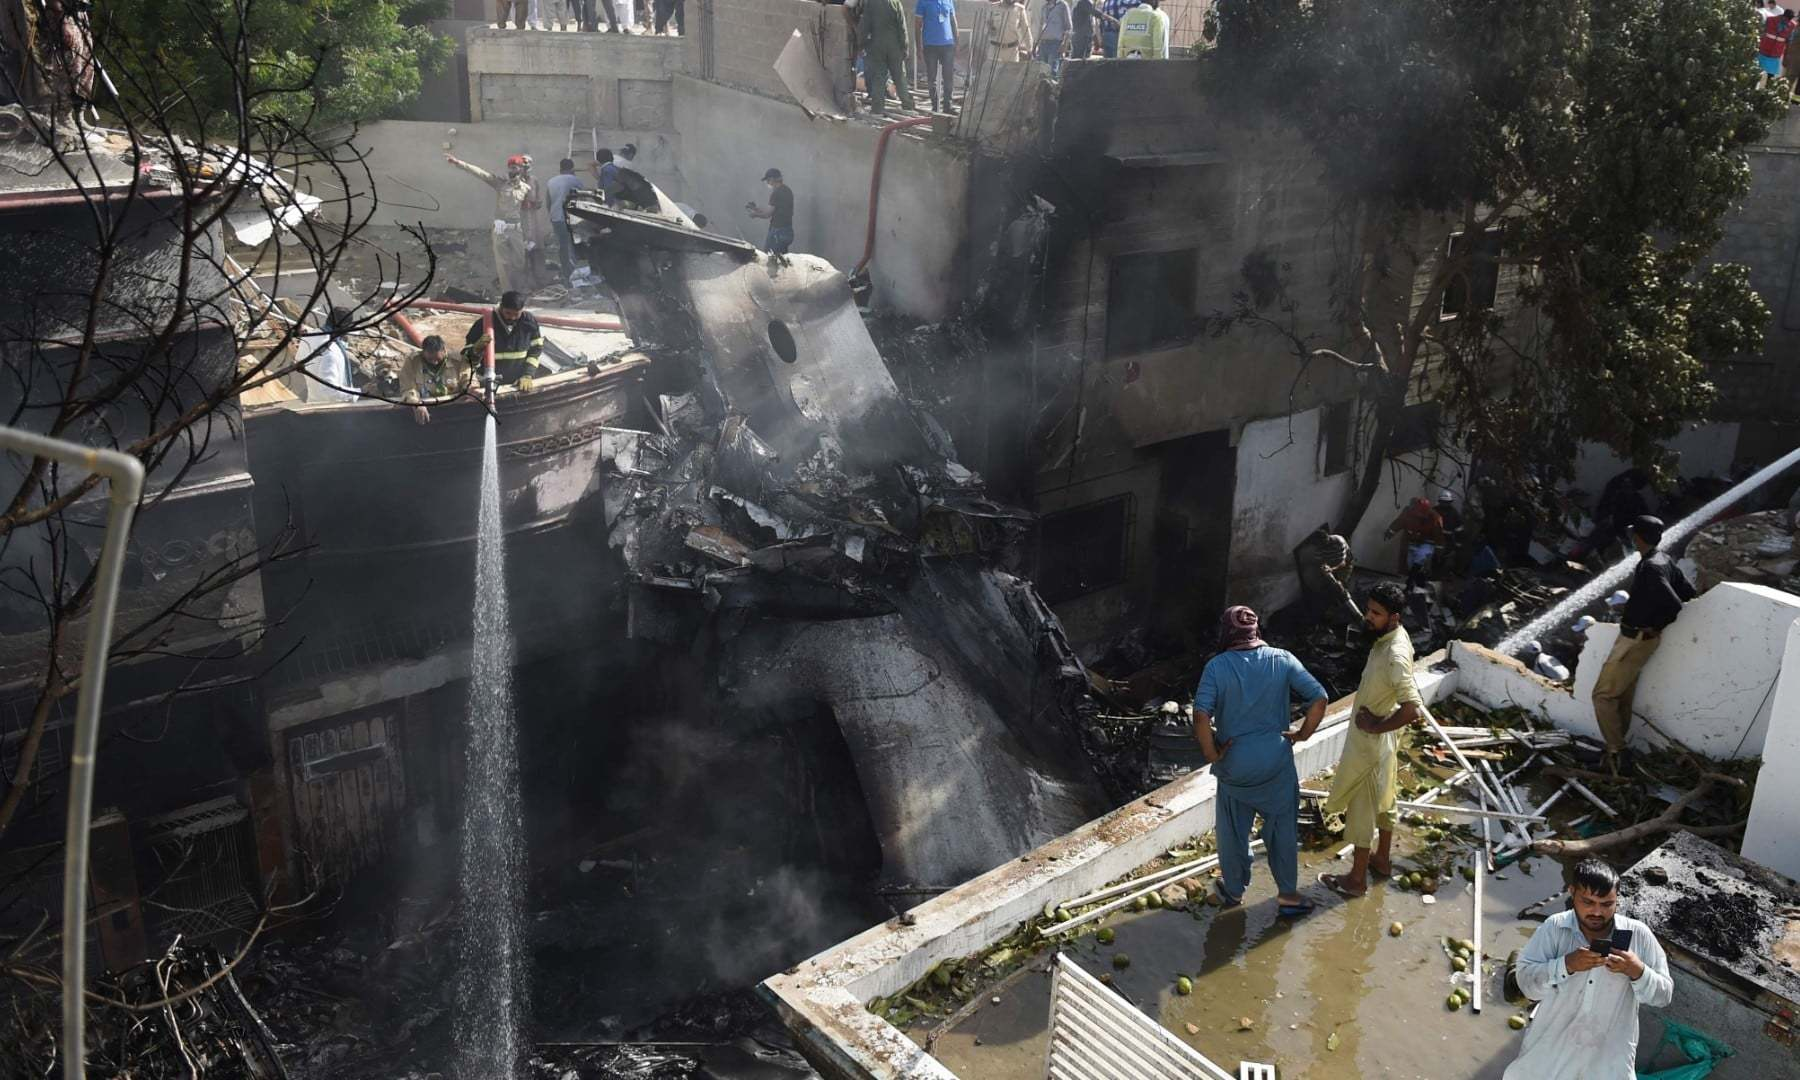 Firefighters spray water on the wreckage of a Pakistan International Airlines aircraft after it crashed at a residential area in Karachi on May 22. — AFP